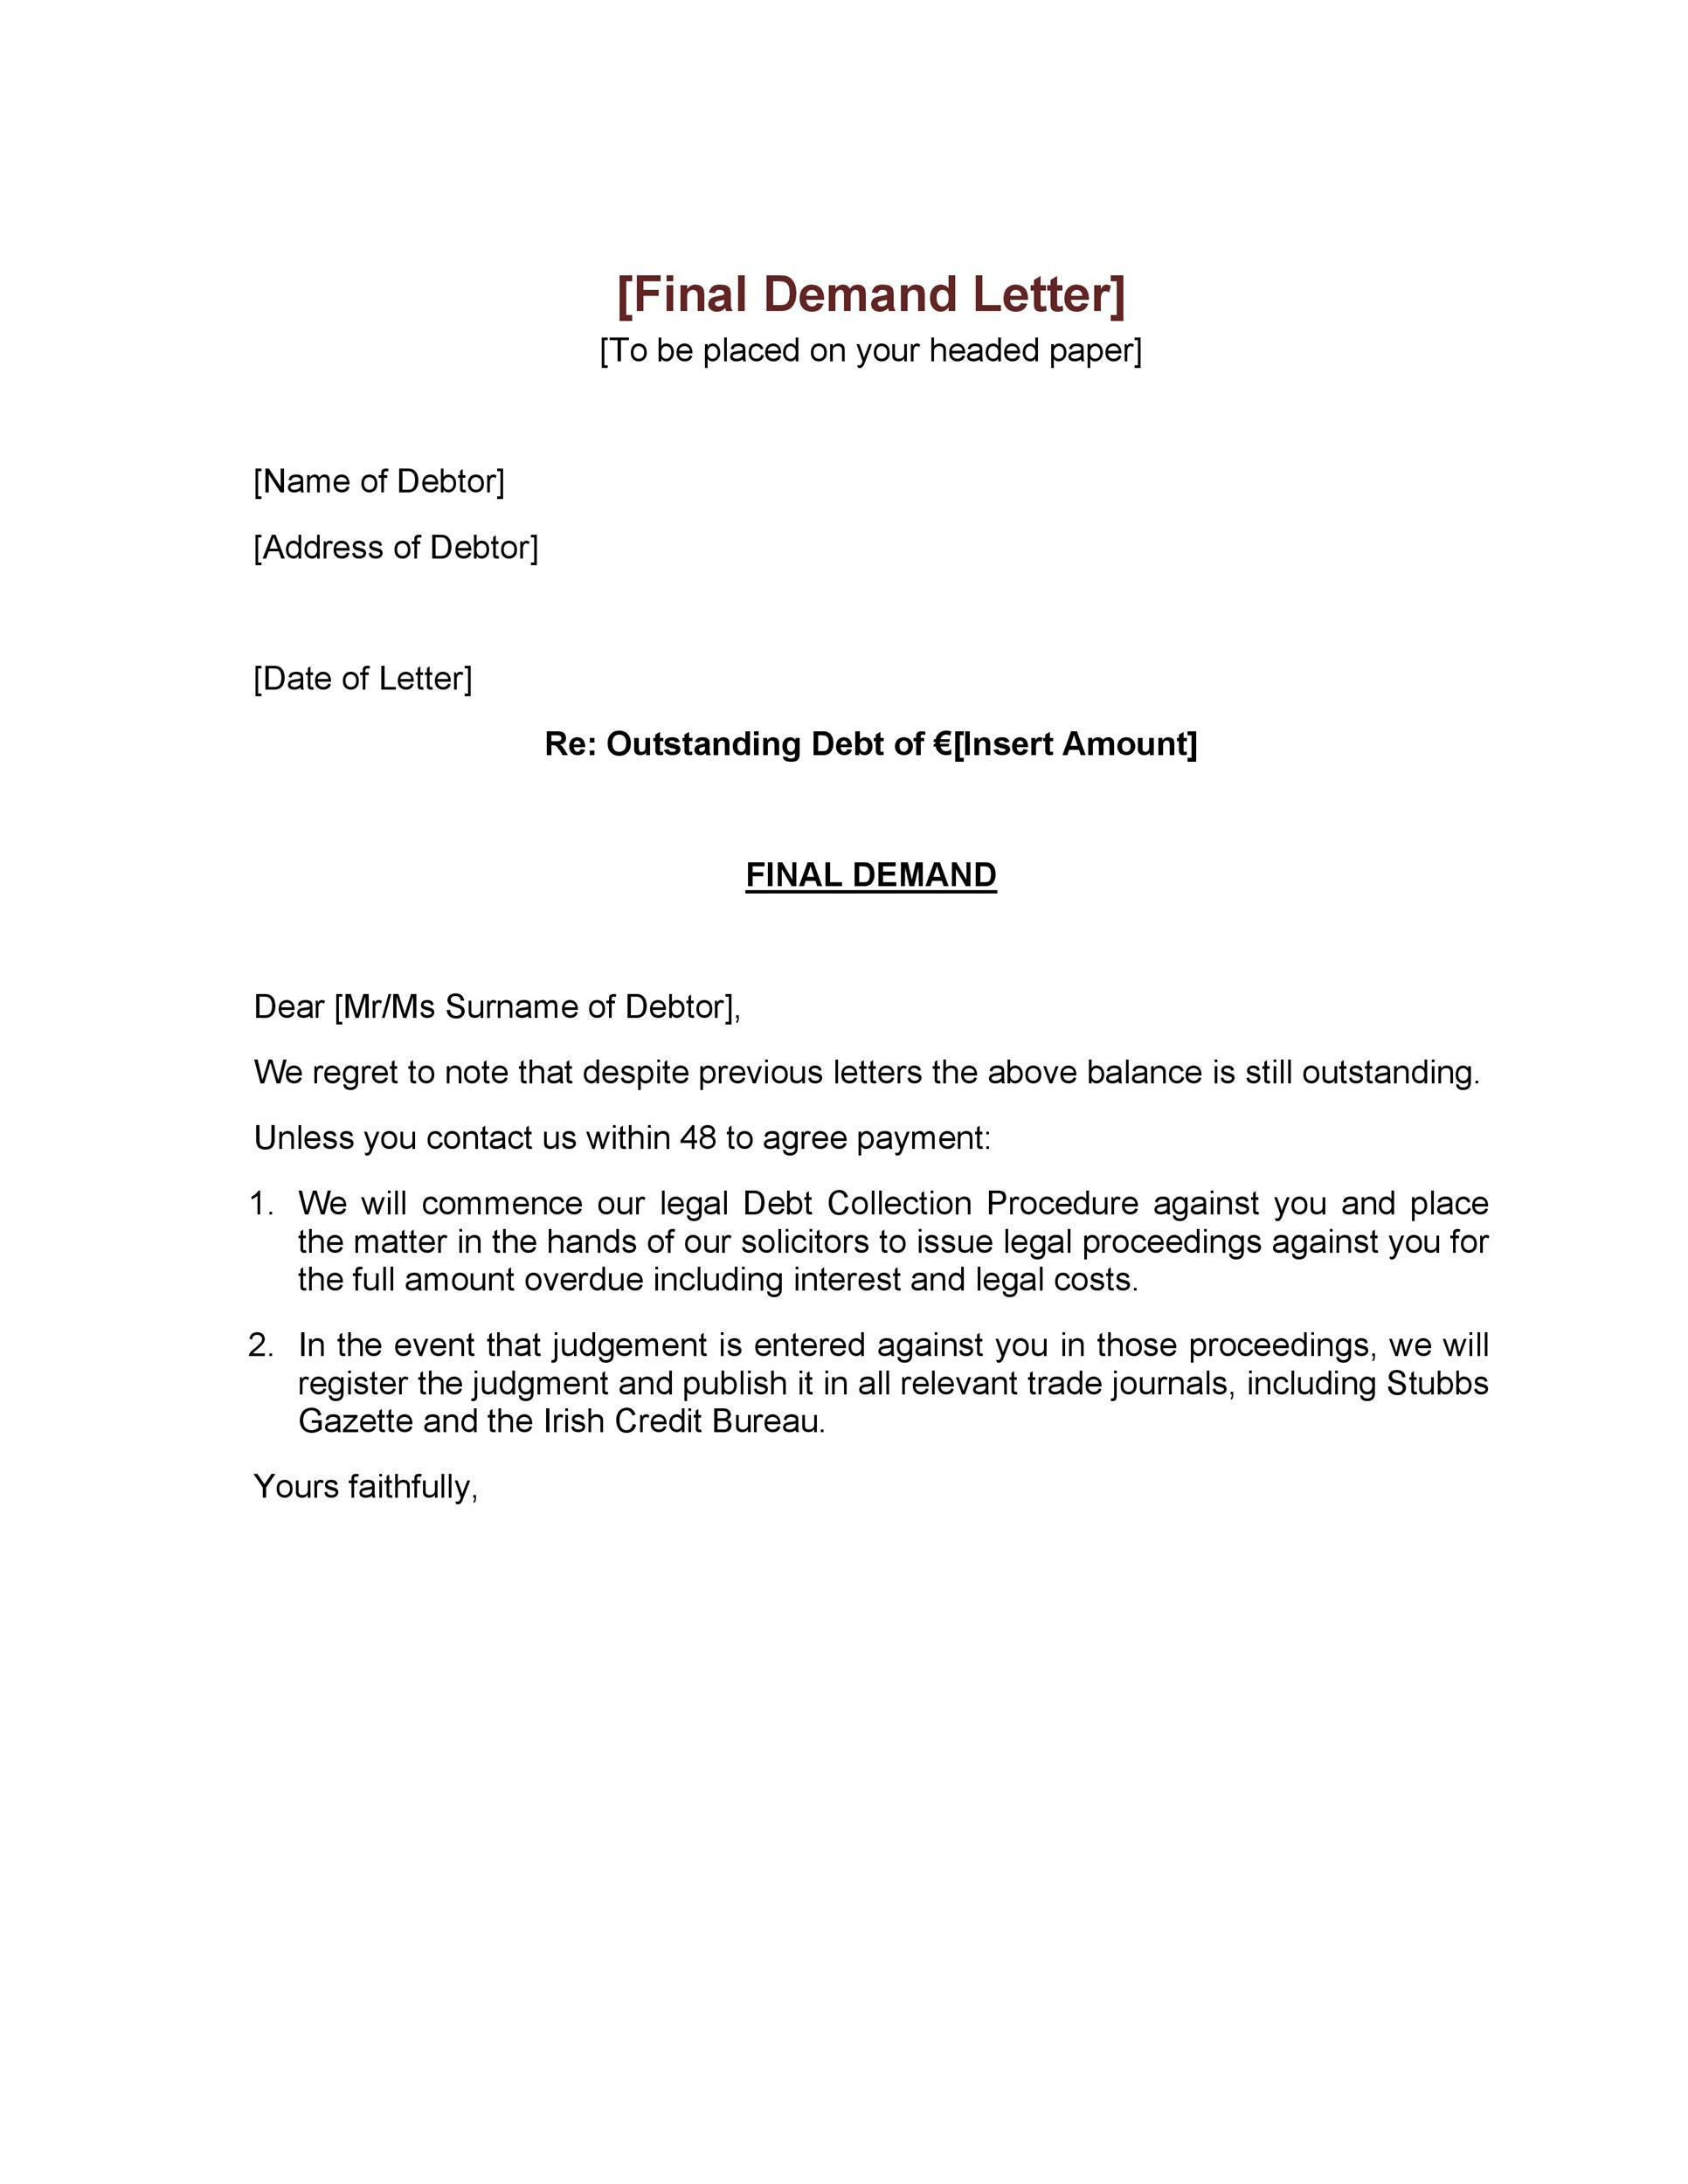 40 Best Demand Letter Templates (Free Samples) - Template Lab